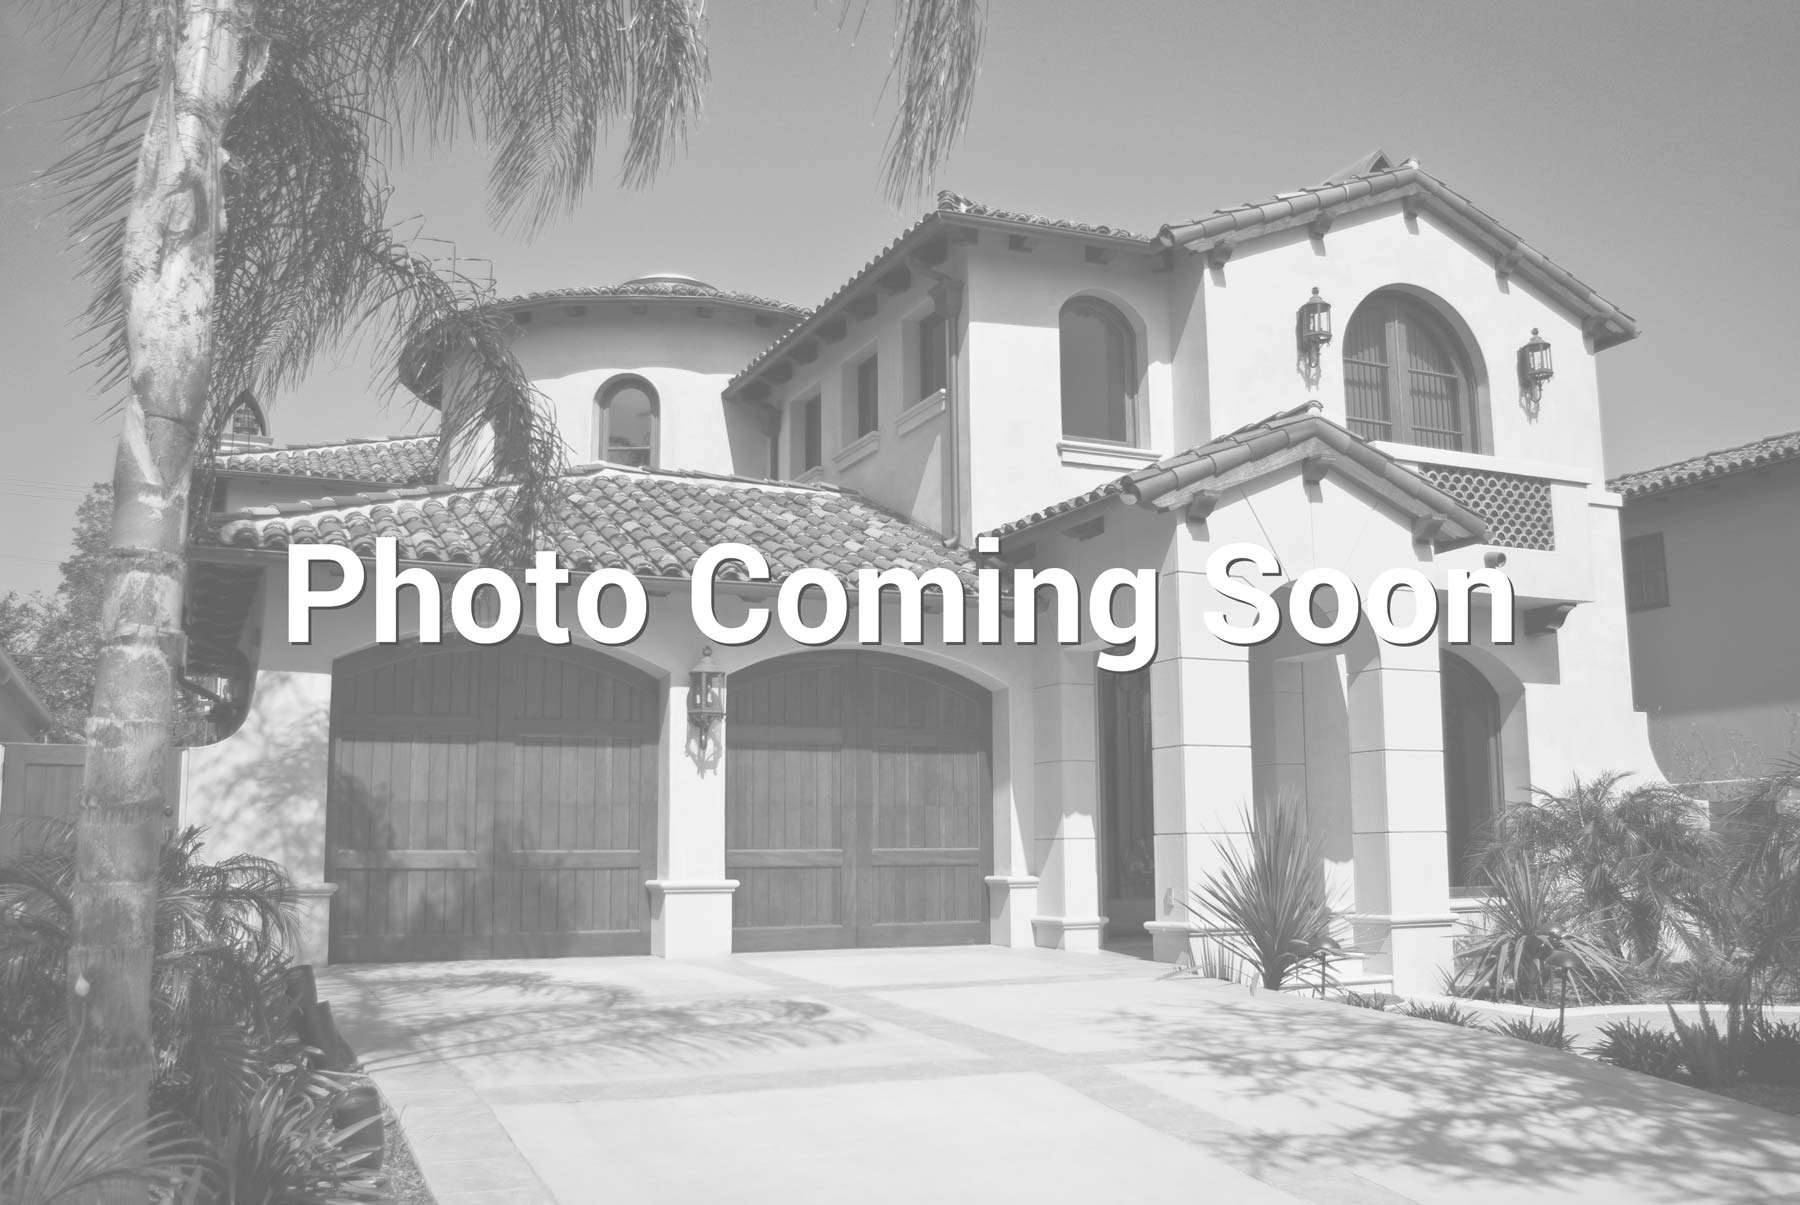 $945,000 - 4Br/4Ba - Home for Sale in Verrado Parcel 5.505, Buckeye